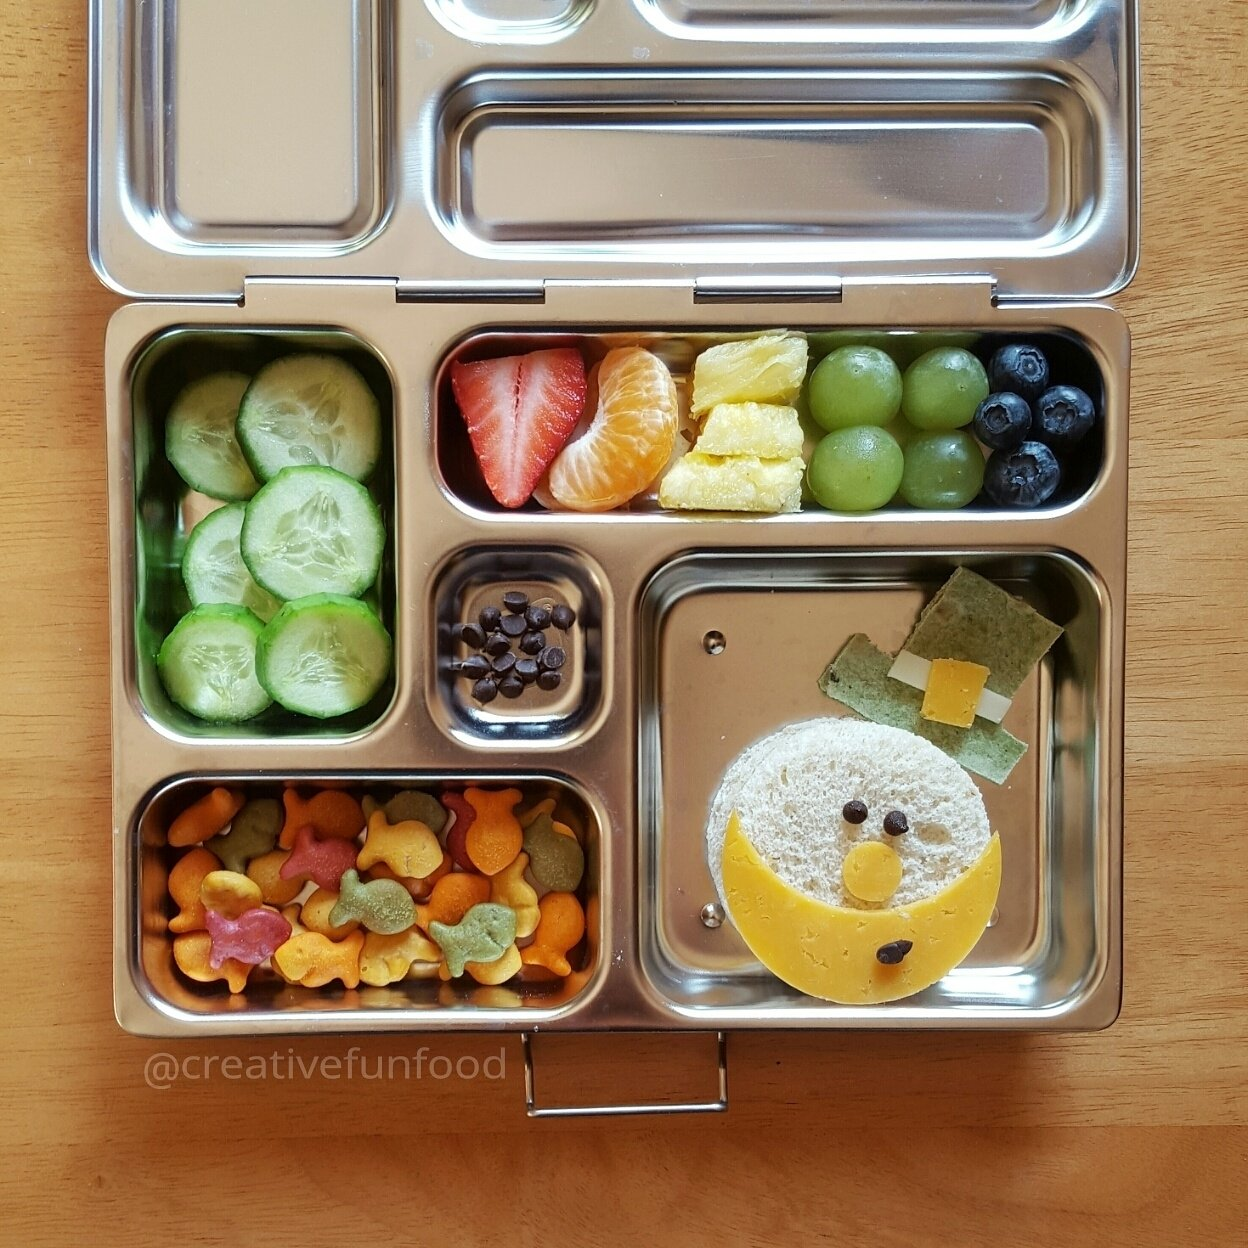 10 Ideal Lunch Ideas For 1 Year Old creative food 1 2020